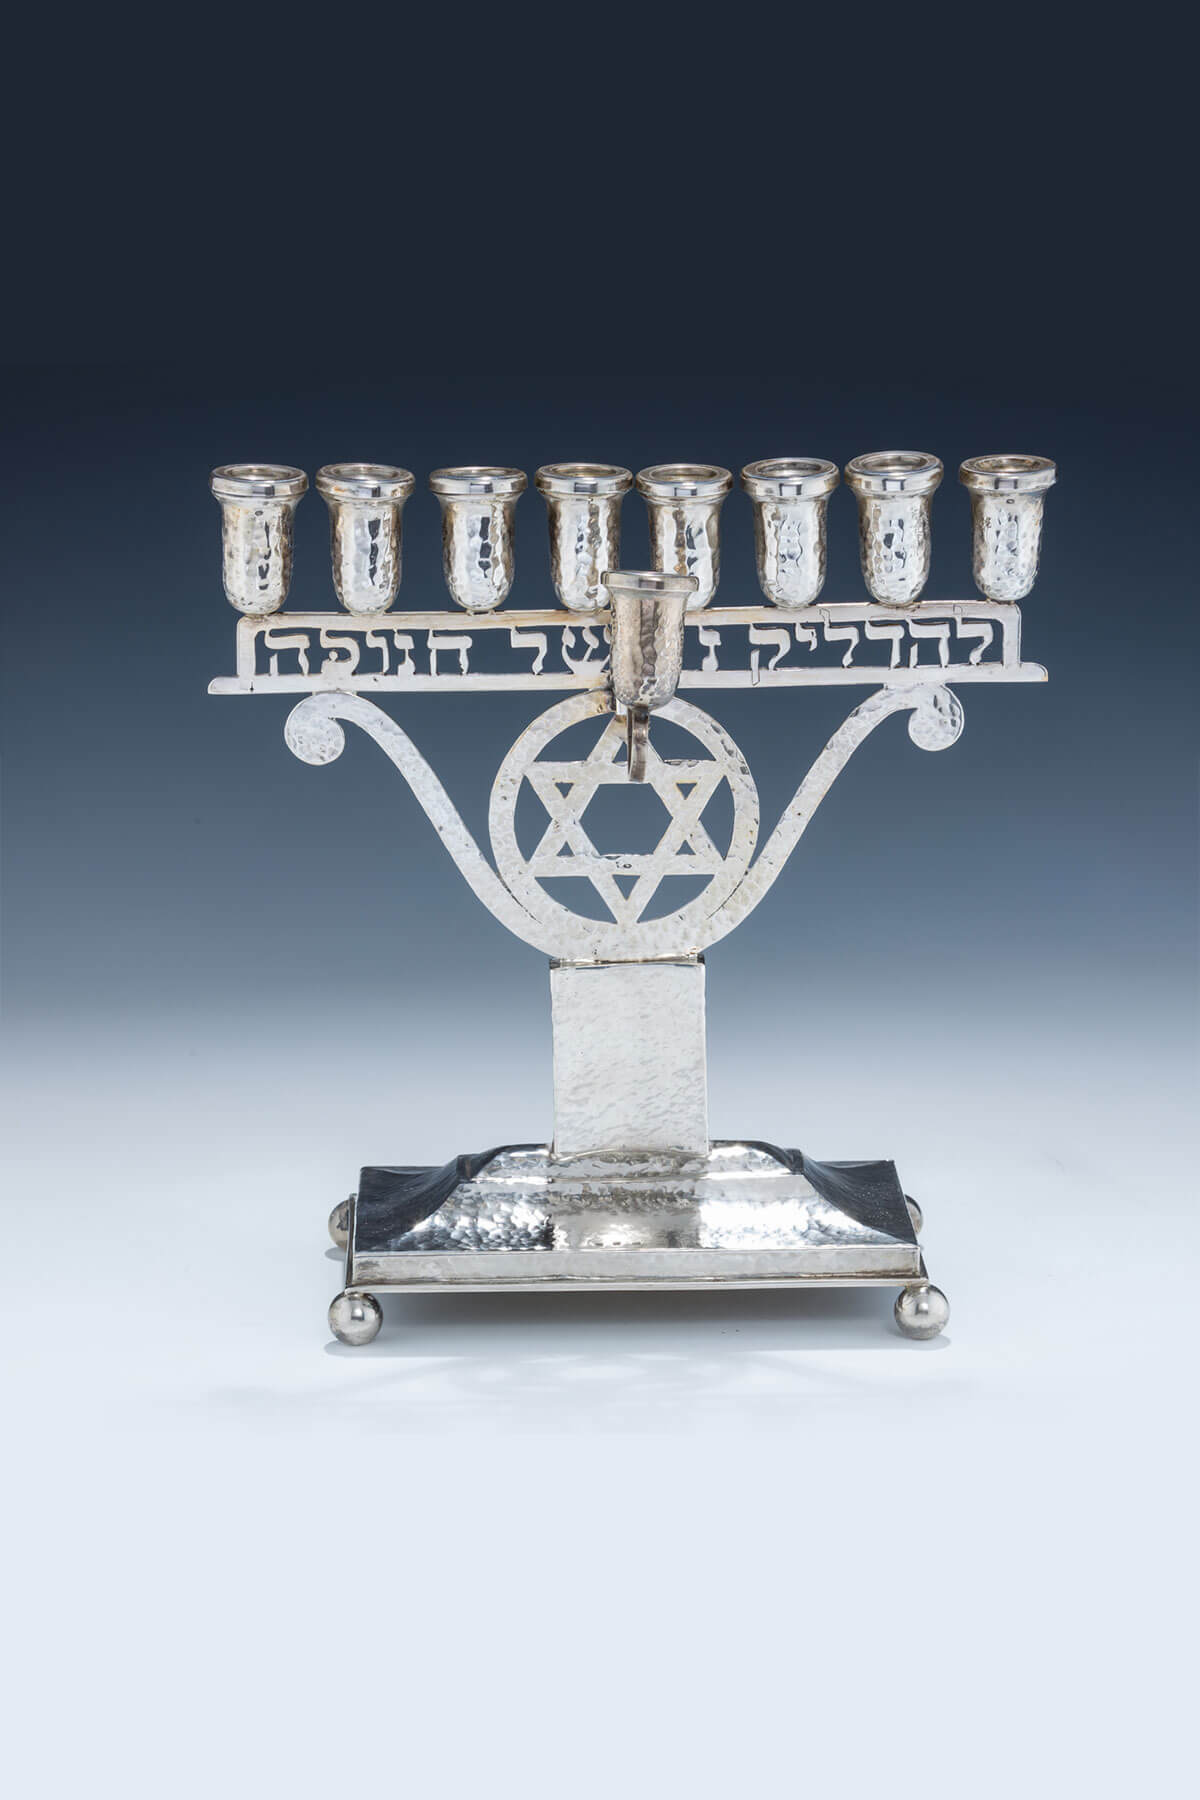 71. An Important Art Deco Silver Chanukah Menorah